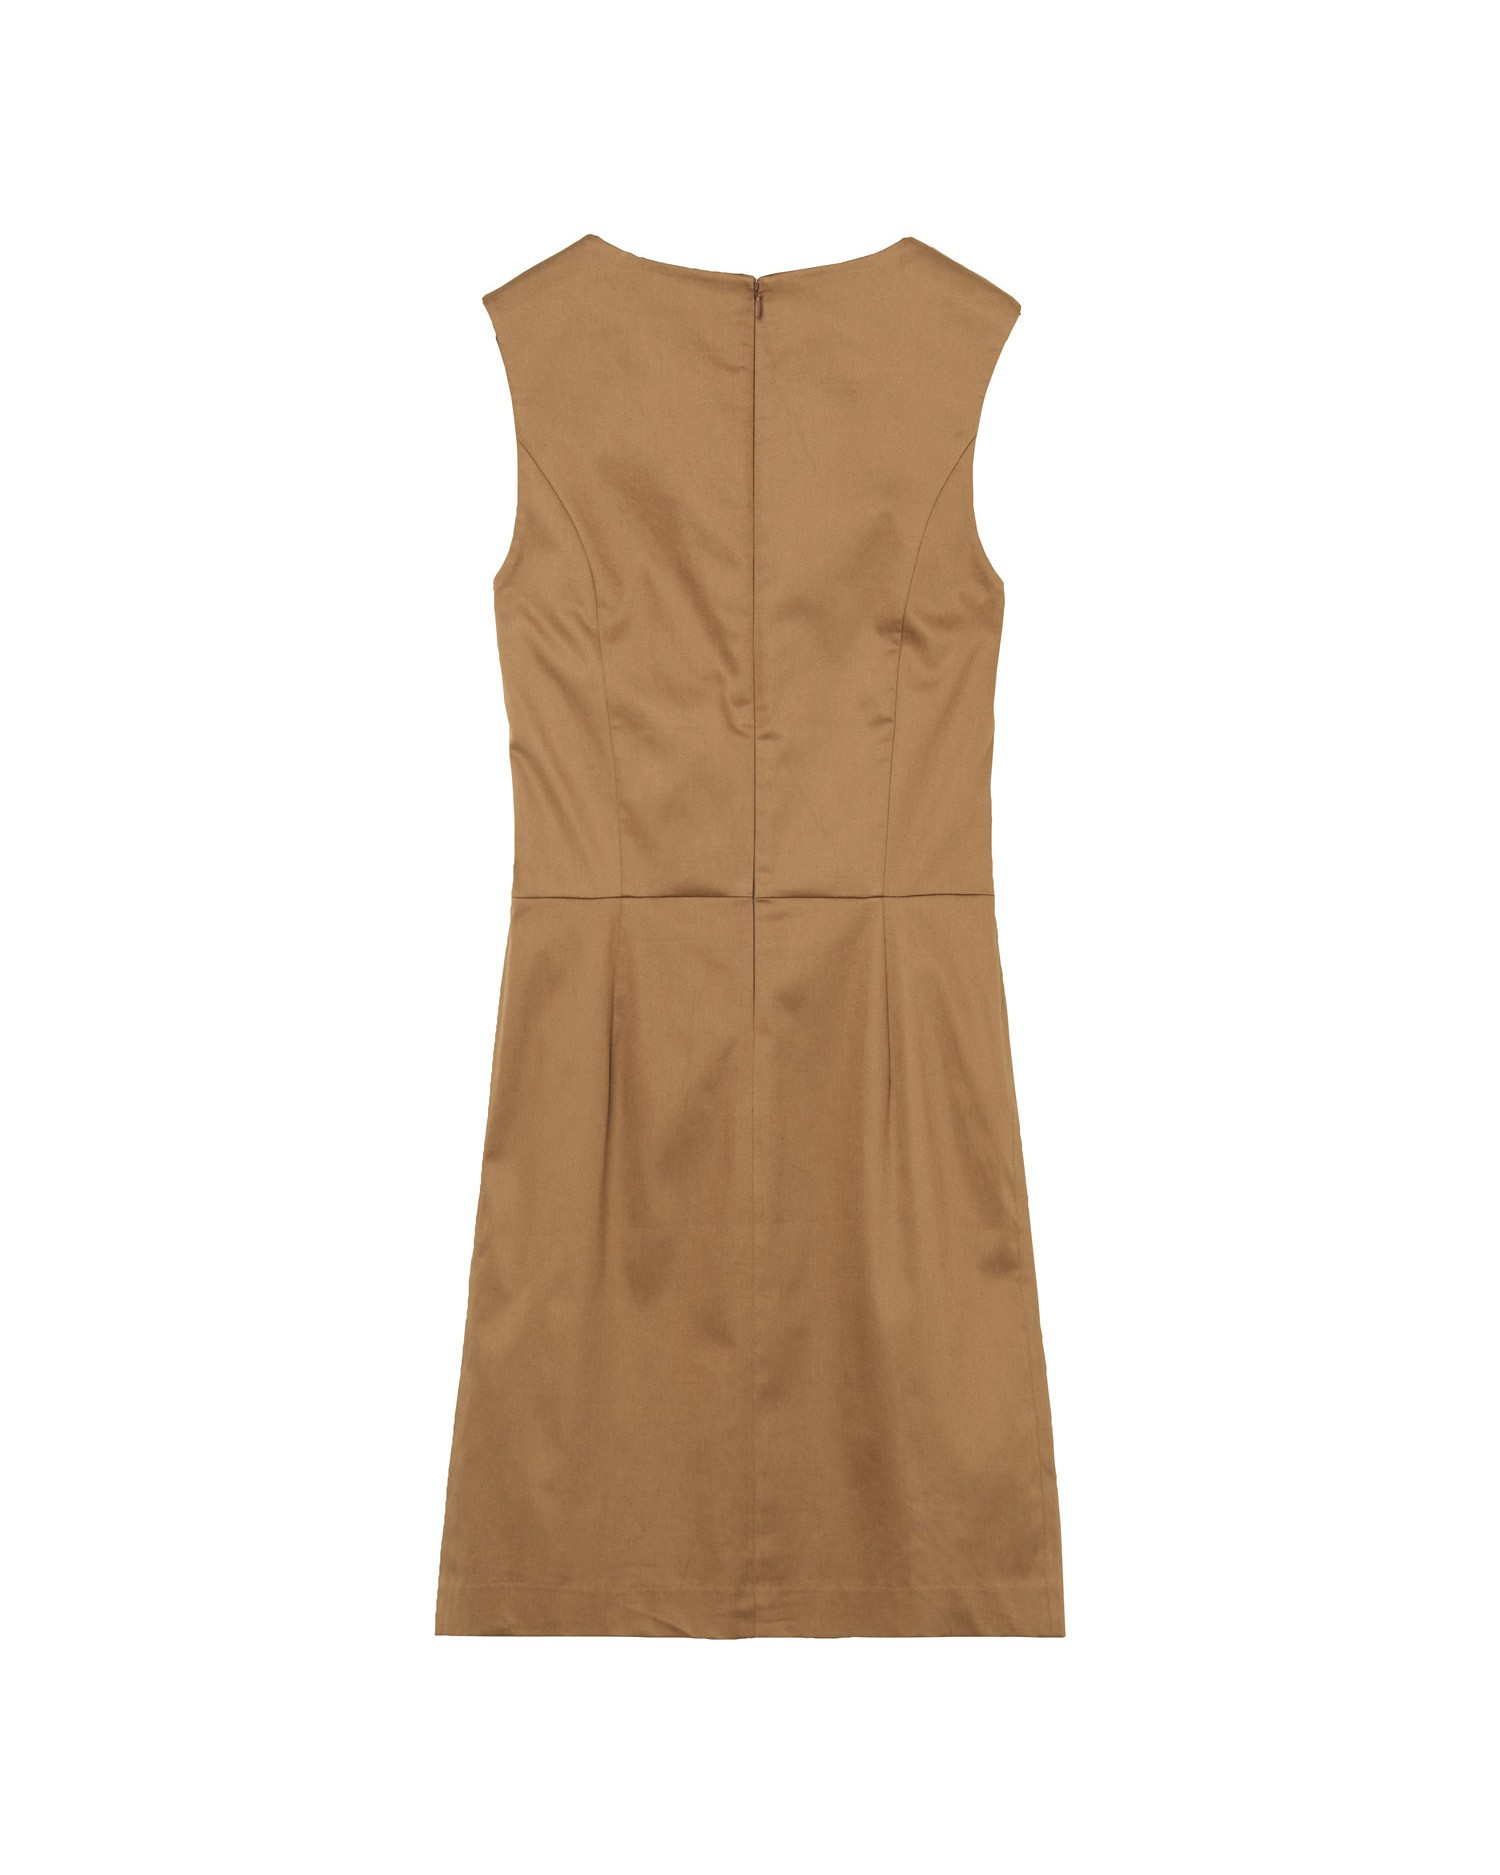 GANT Women's Dress - 450036